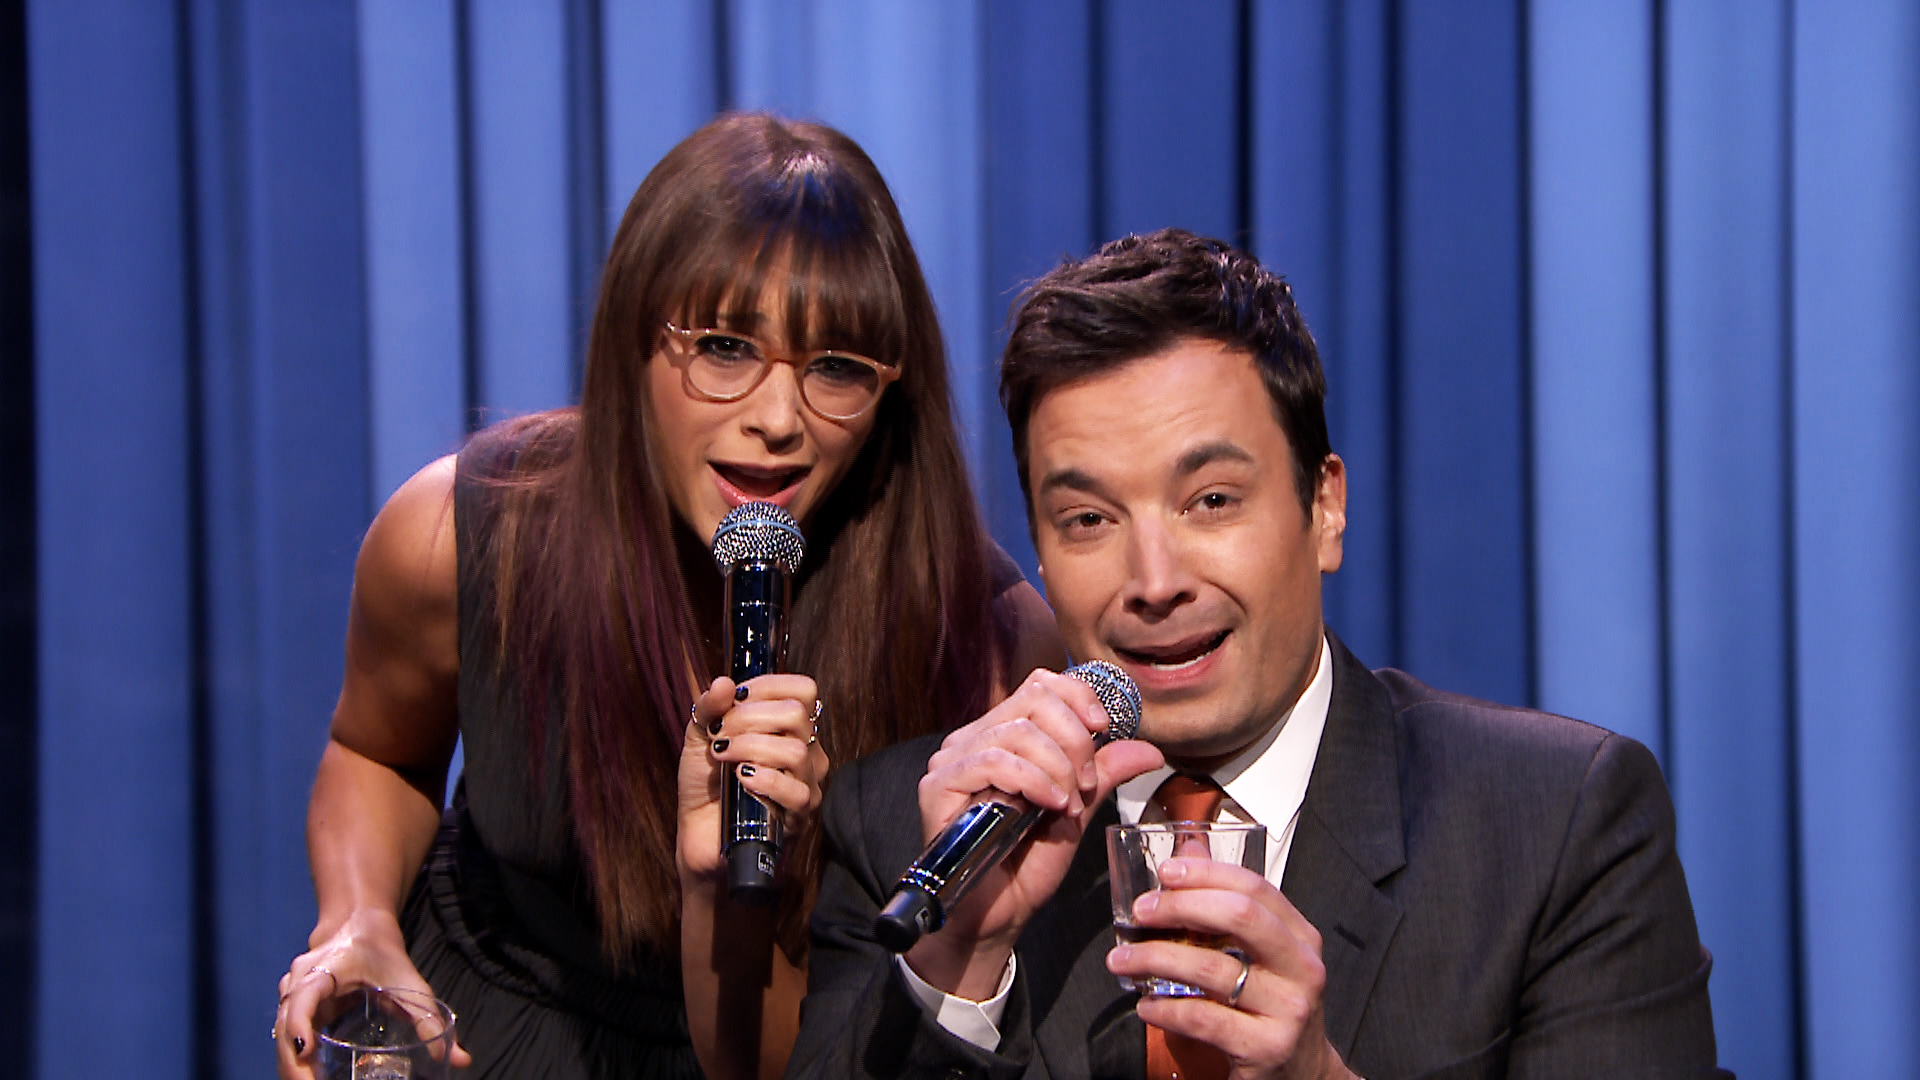 Rashida Jones and Jimmy Fallon just expertly parodied Taylor Swift, in honor of the holidays